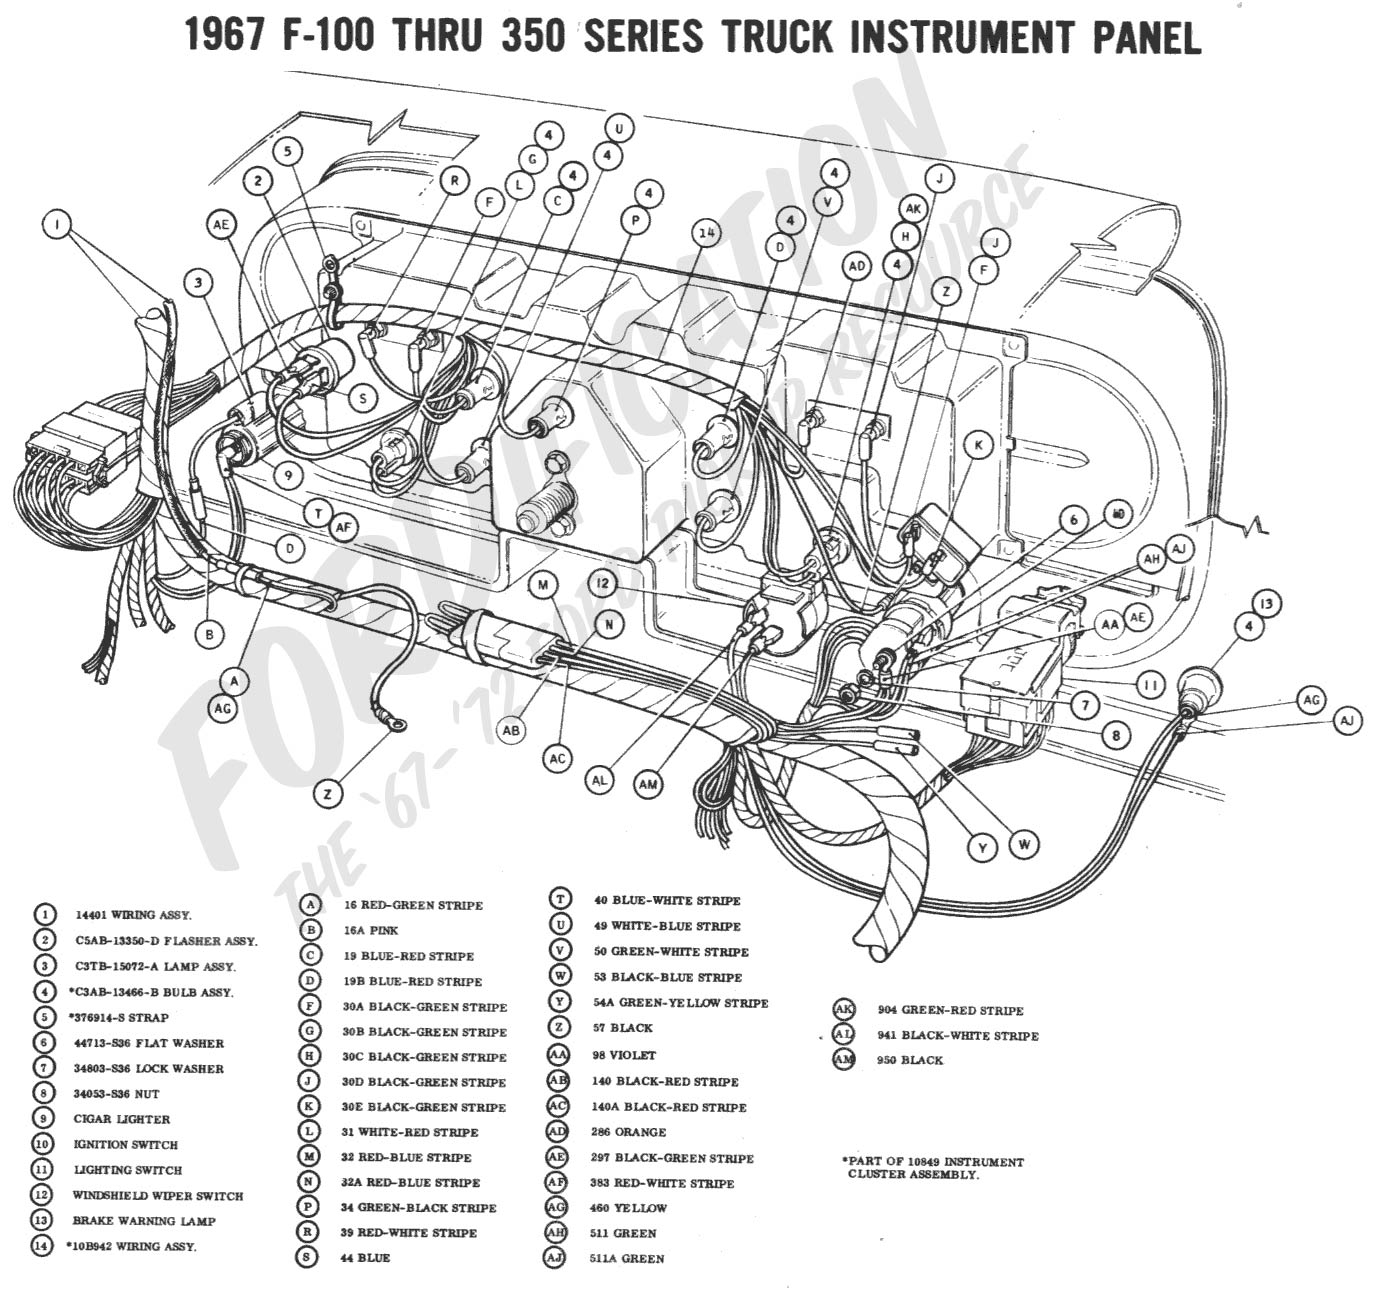 vauxhall lights wiring diagram with Schematics H on 1994 Toyota Corolla Wiring Diagram also Panasonic Cq Rx100u Wiring Harness Diagram in addition Single Phase Motor Wiring Diagram With Capacitor Start Capacitor Run additionally 2001 Santa Fe Wiring Schematic moreover Wiring Diagram Shaded Pole Motor.